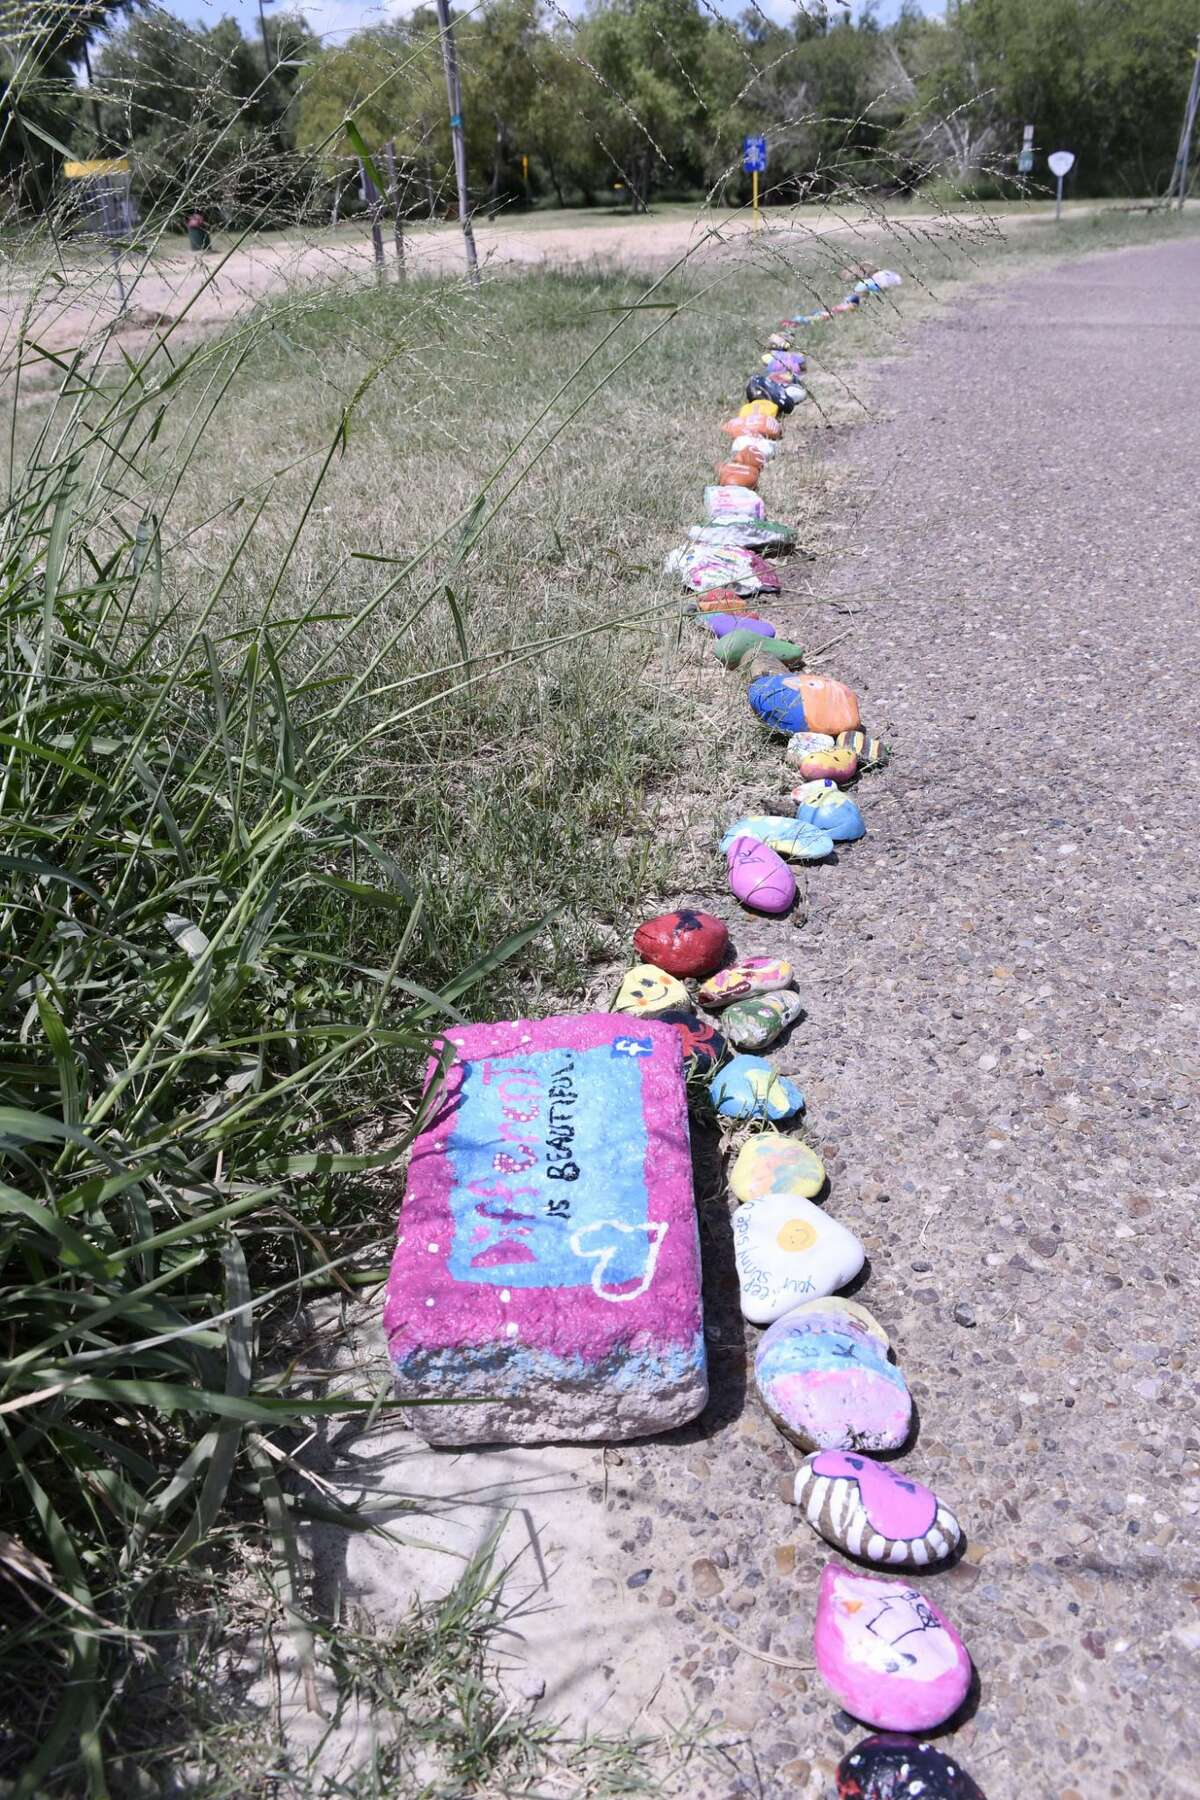 Visitors to North Central Park and other parks throughout Laredo have noticed the COVID-19 Snake, a collection of hand painted rocks lined up as a snake where participants can express their thoughts and show off their artistic talent. The project was started on June 3, 2020 by Once Upon A Rockk, a group for rock lovers.People are asked to hand paint their own rock and add it to the snake in their park.